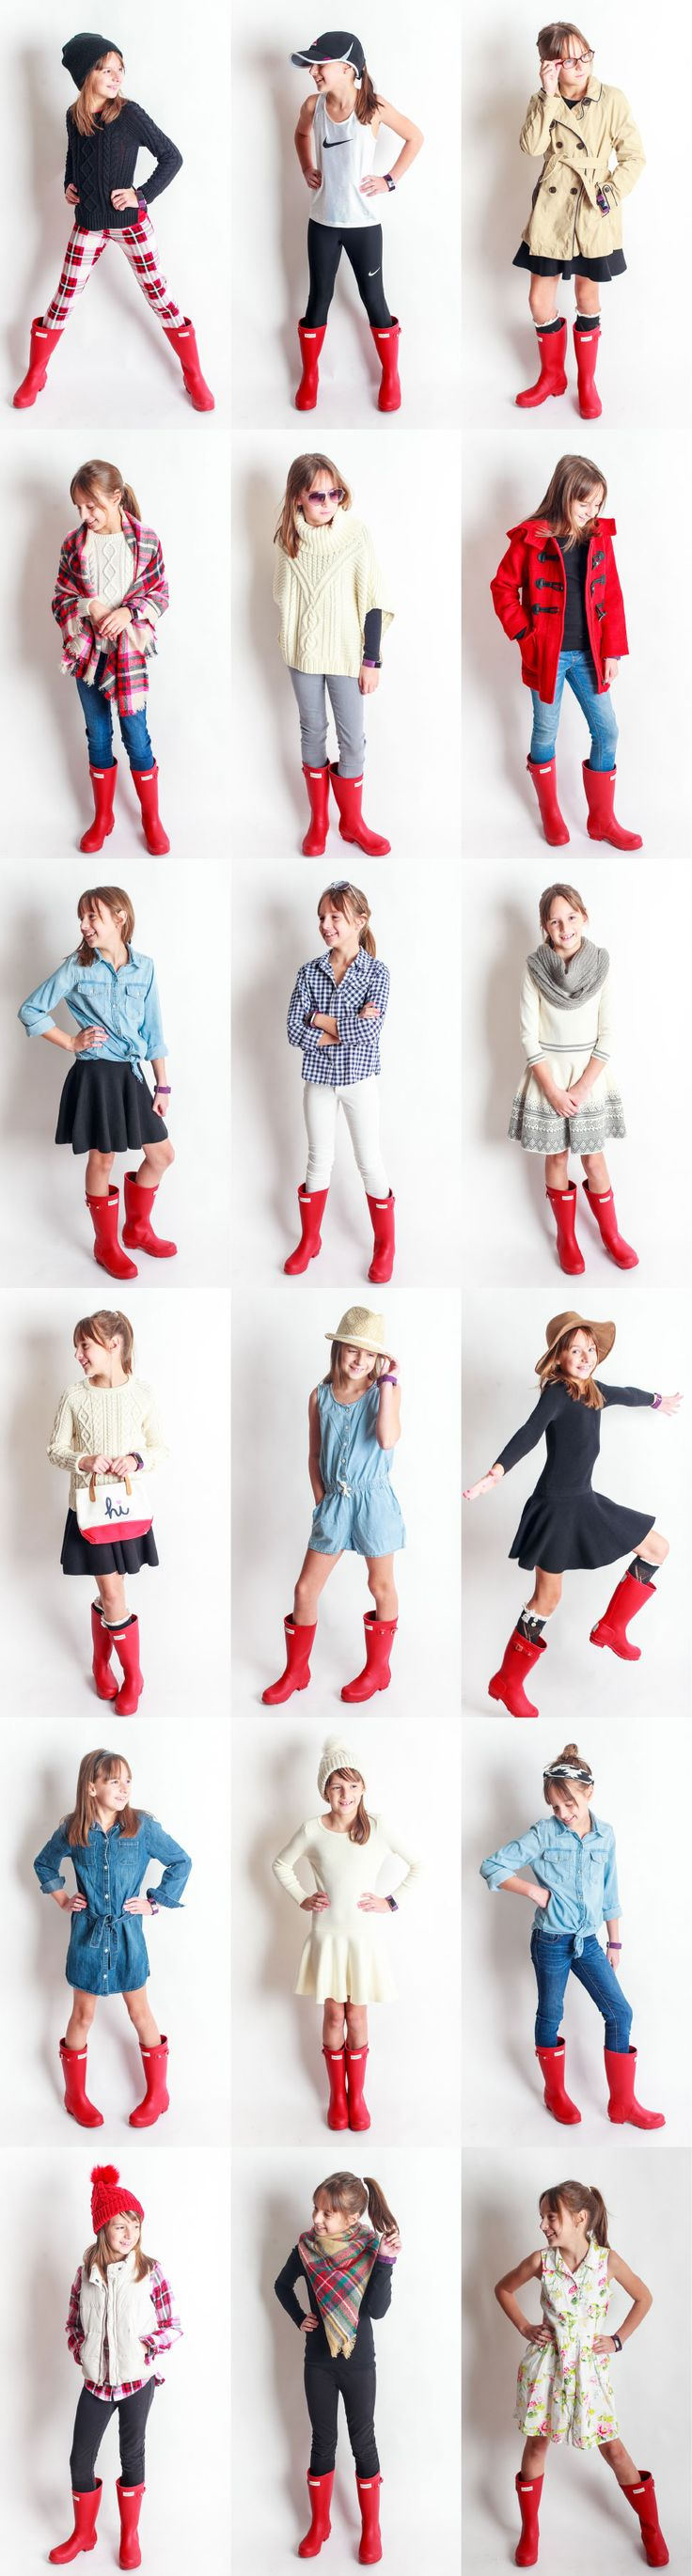 Red Rain Boots Project! 18 outfits with one pair of red rain boots!